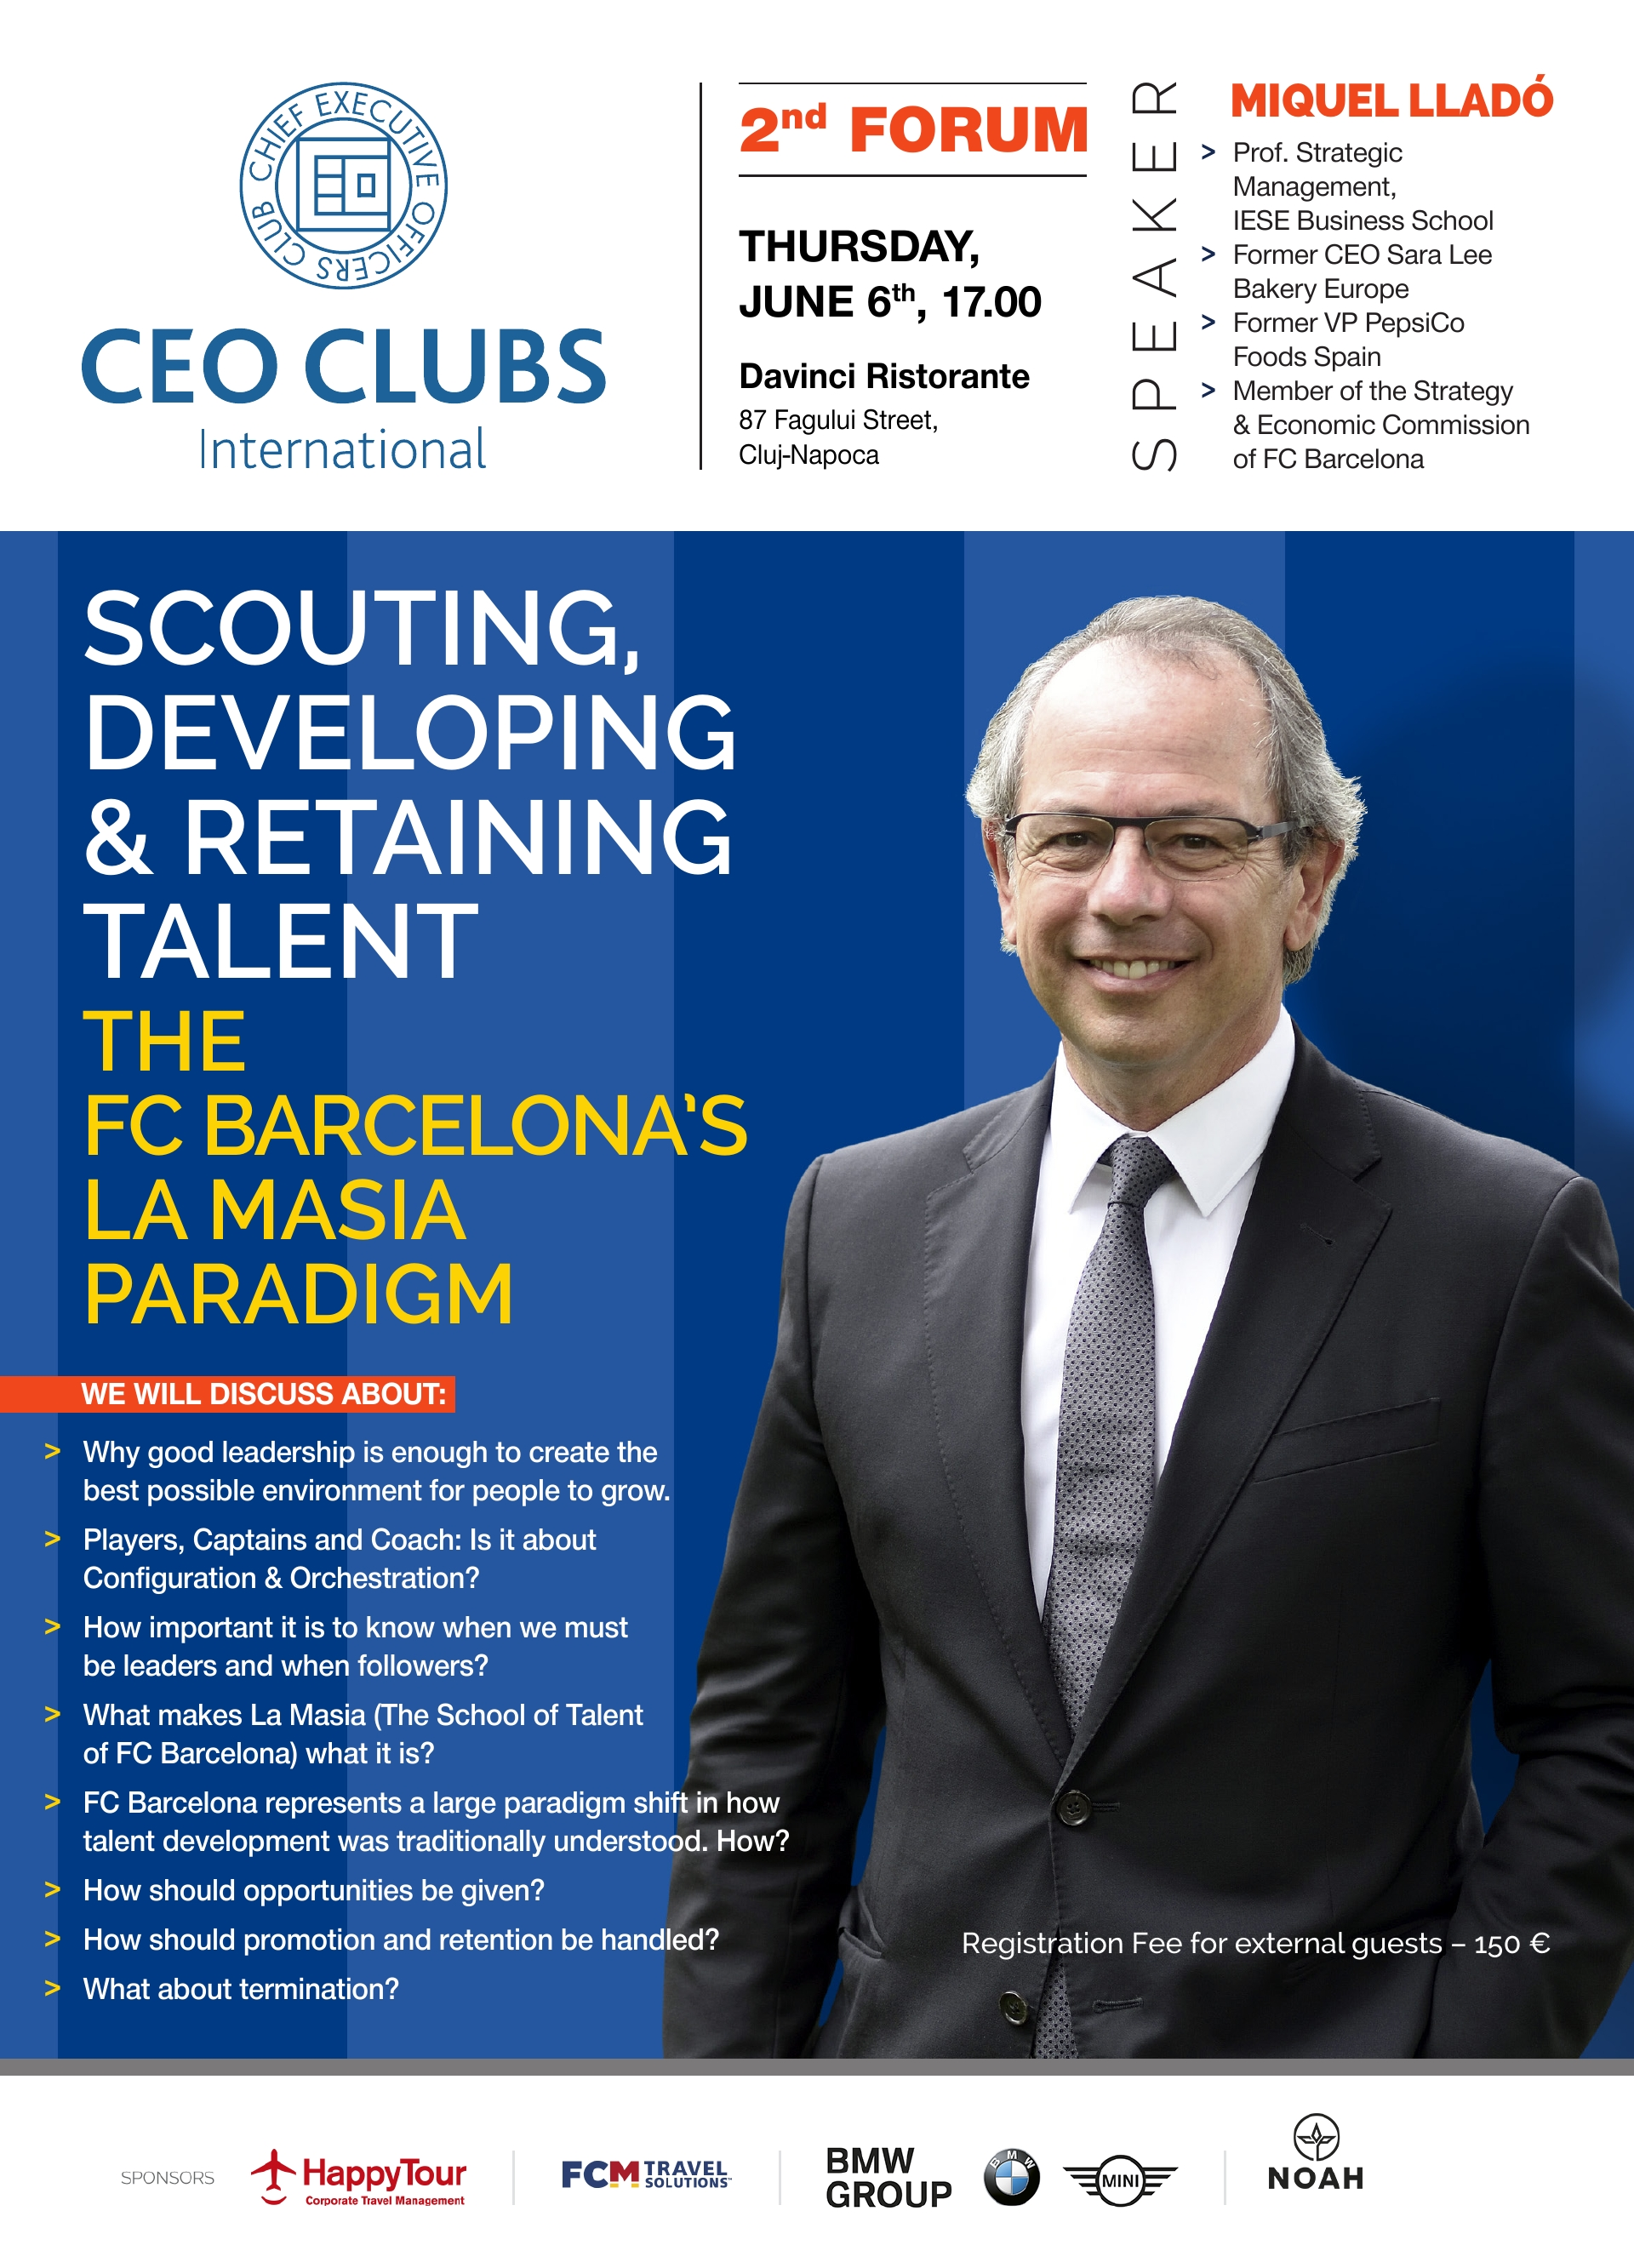 2nd Forum: Scouting, Developing & Retaining Talent: THE FC BARCELONA'S LA MASIA PARADIGM